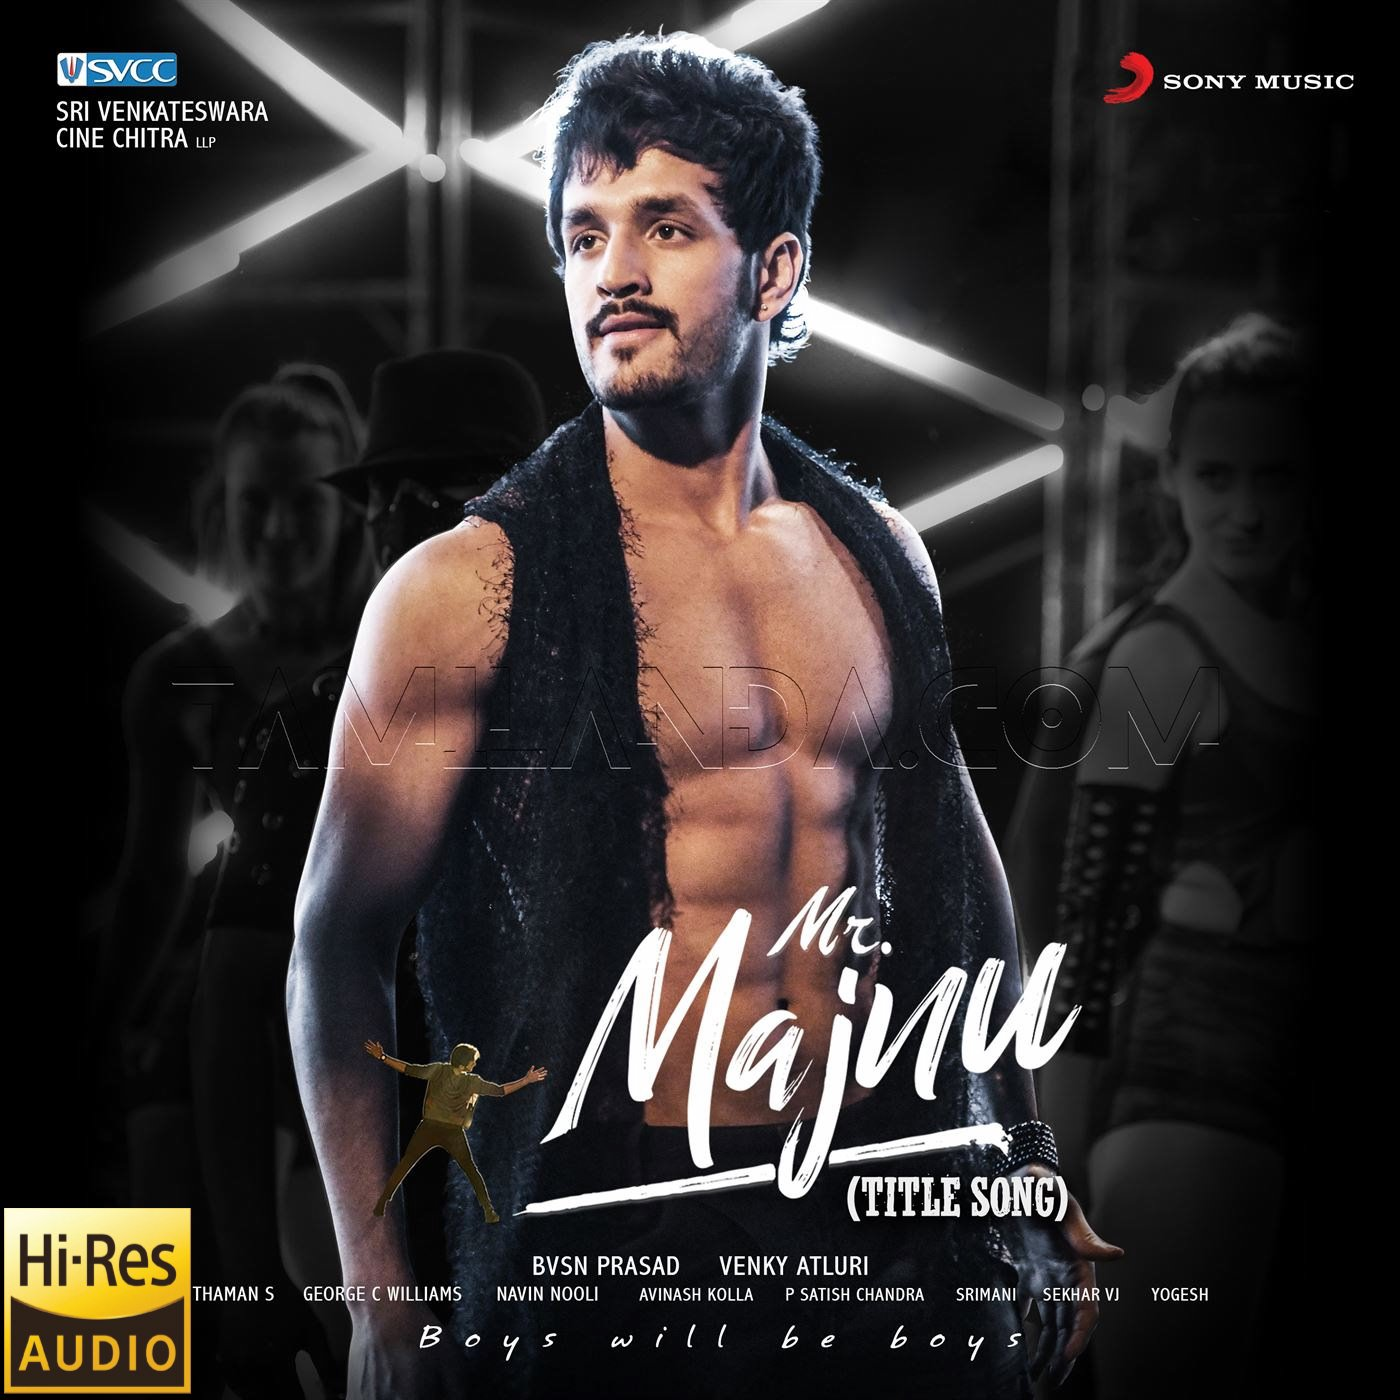 Mr. Majnu (From Mr. Majnu) – Single FLAC Song (2018) (24 BIT 48 KHZ)